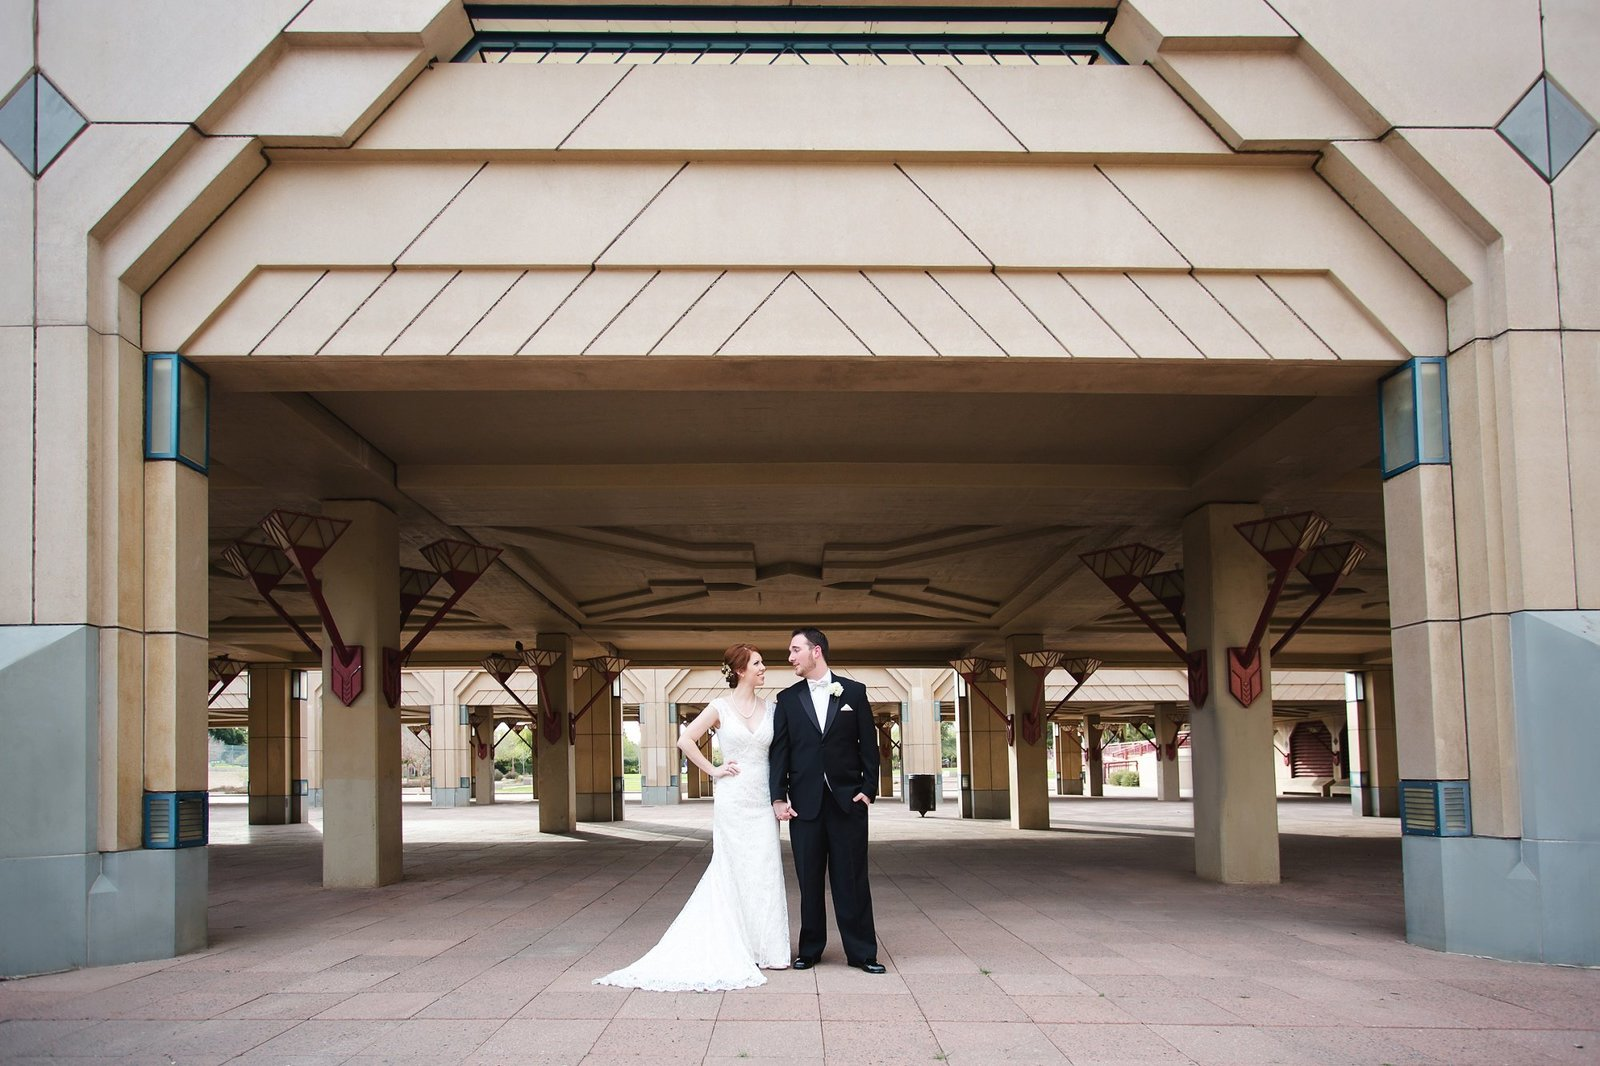 Bride + Groom Portraits Denver Colorado Springs CO Wedding Photographer Genevieve Hansen 030